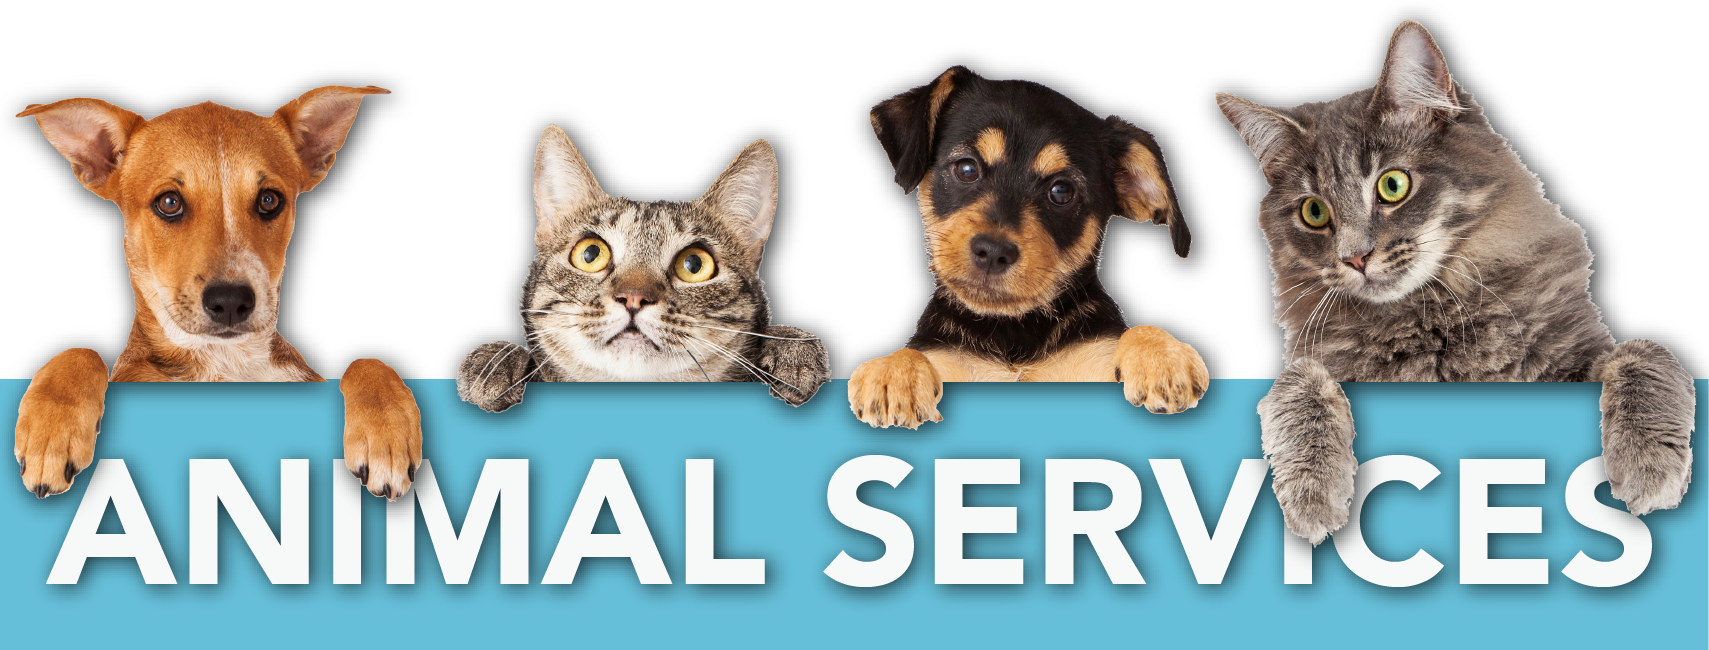 Animal Services Header